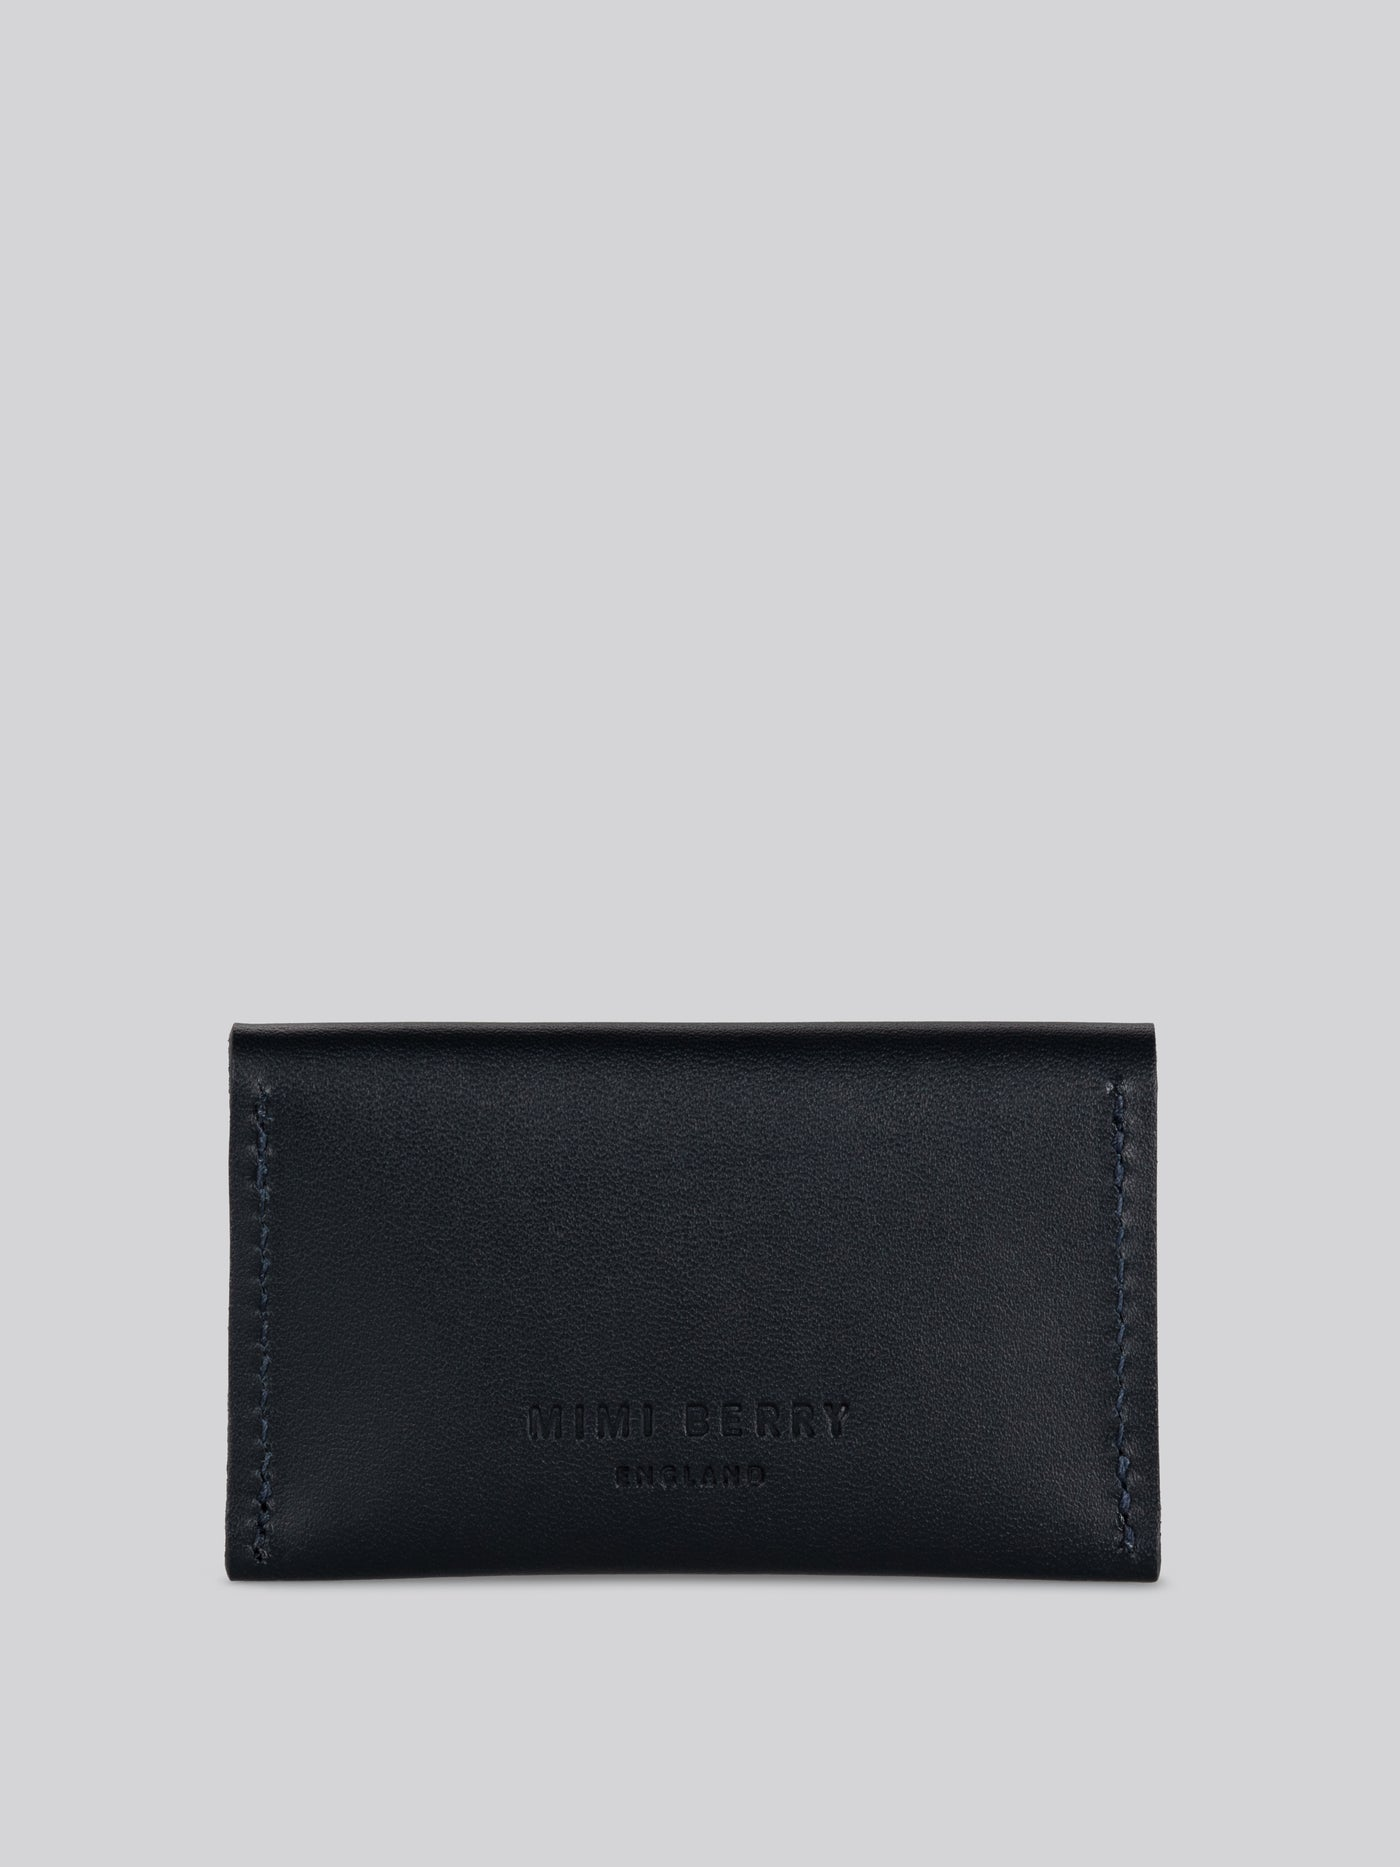 Coin purse - Navy}